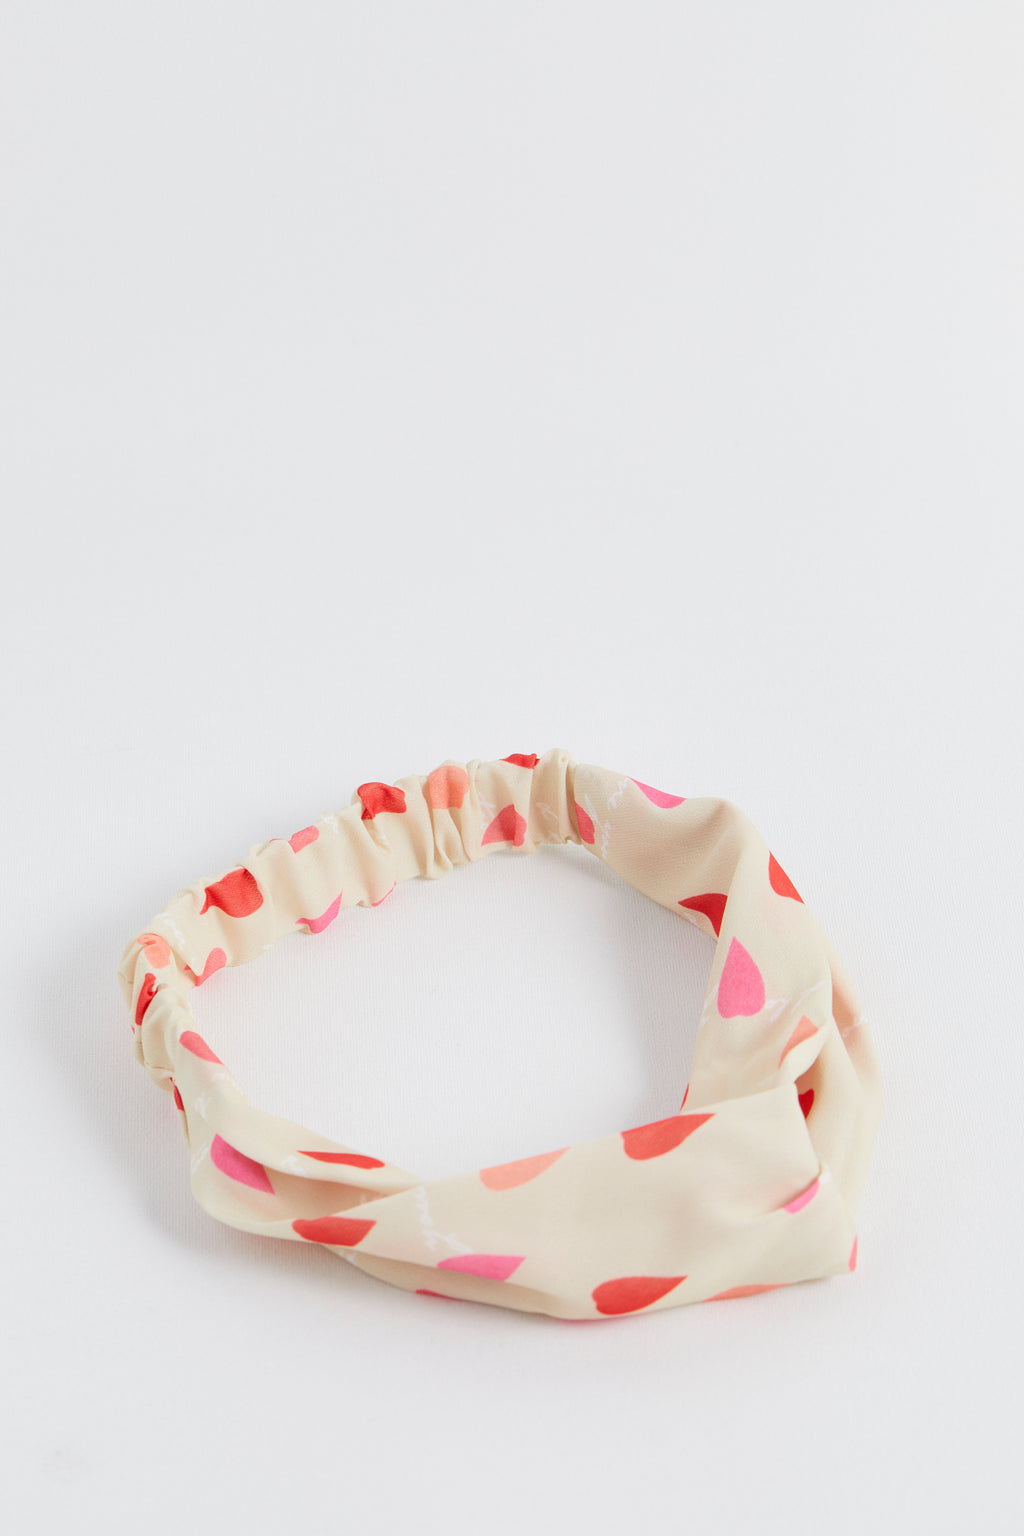 Heart Knot Hairband - picnic-sf